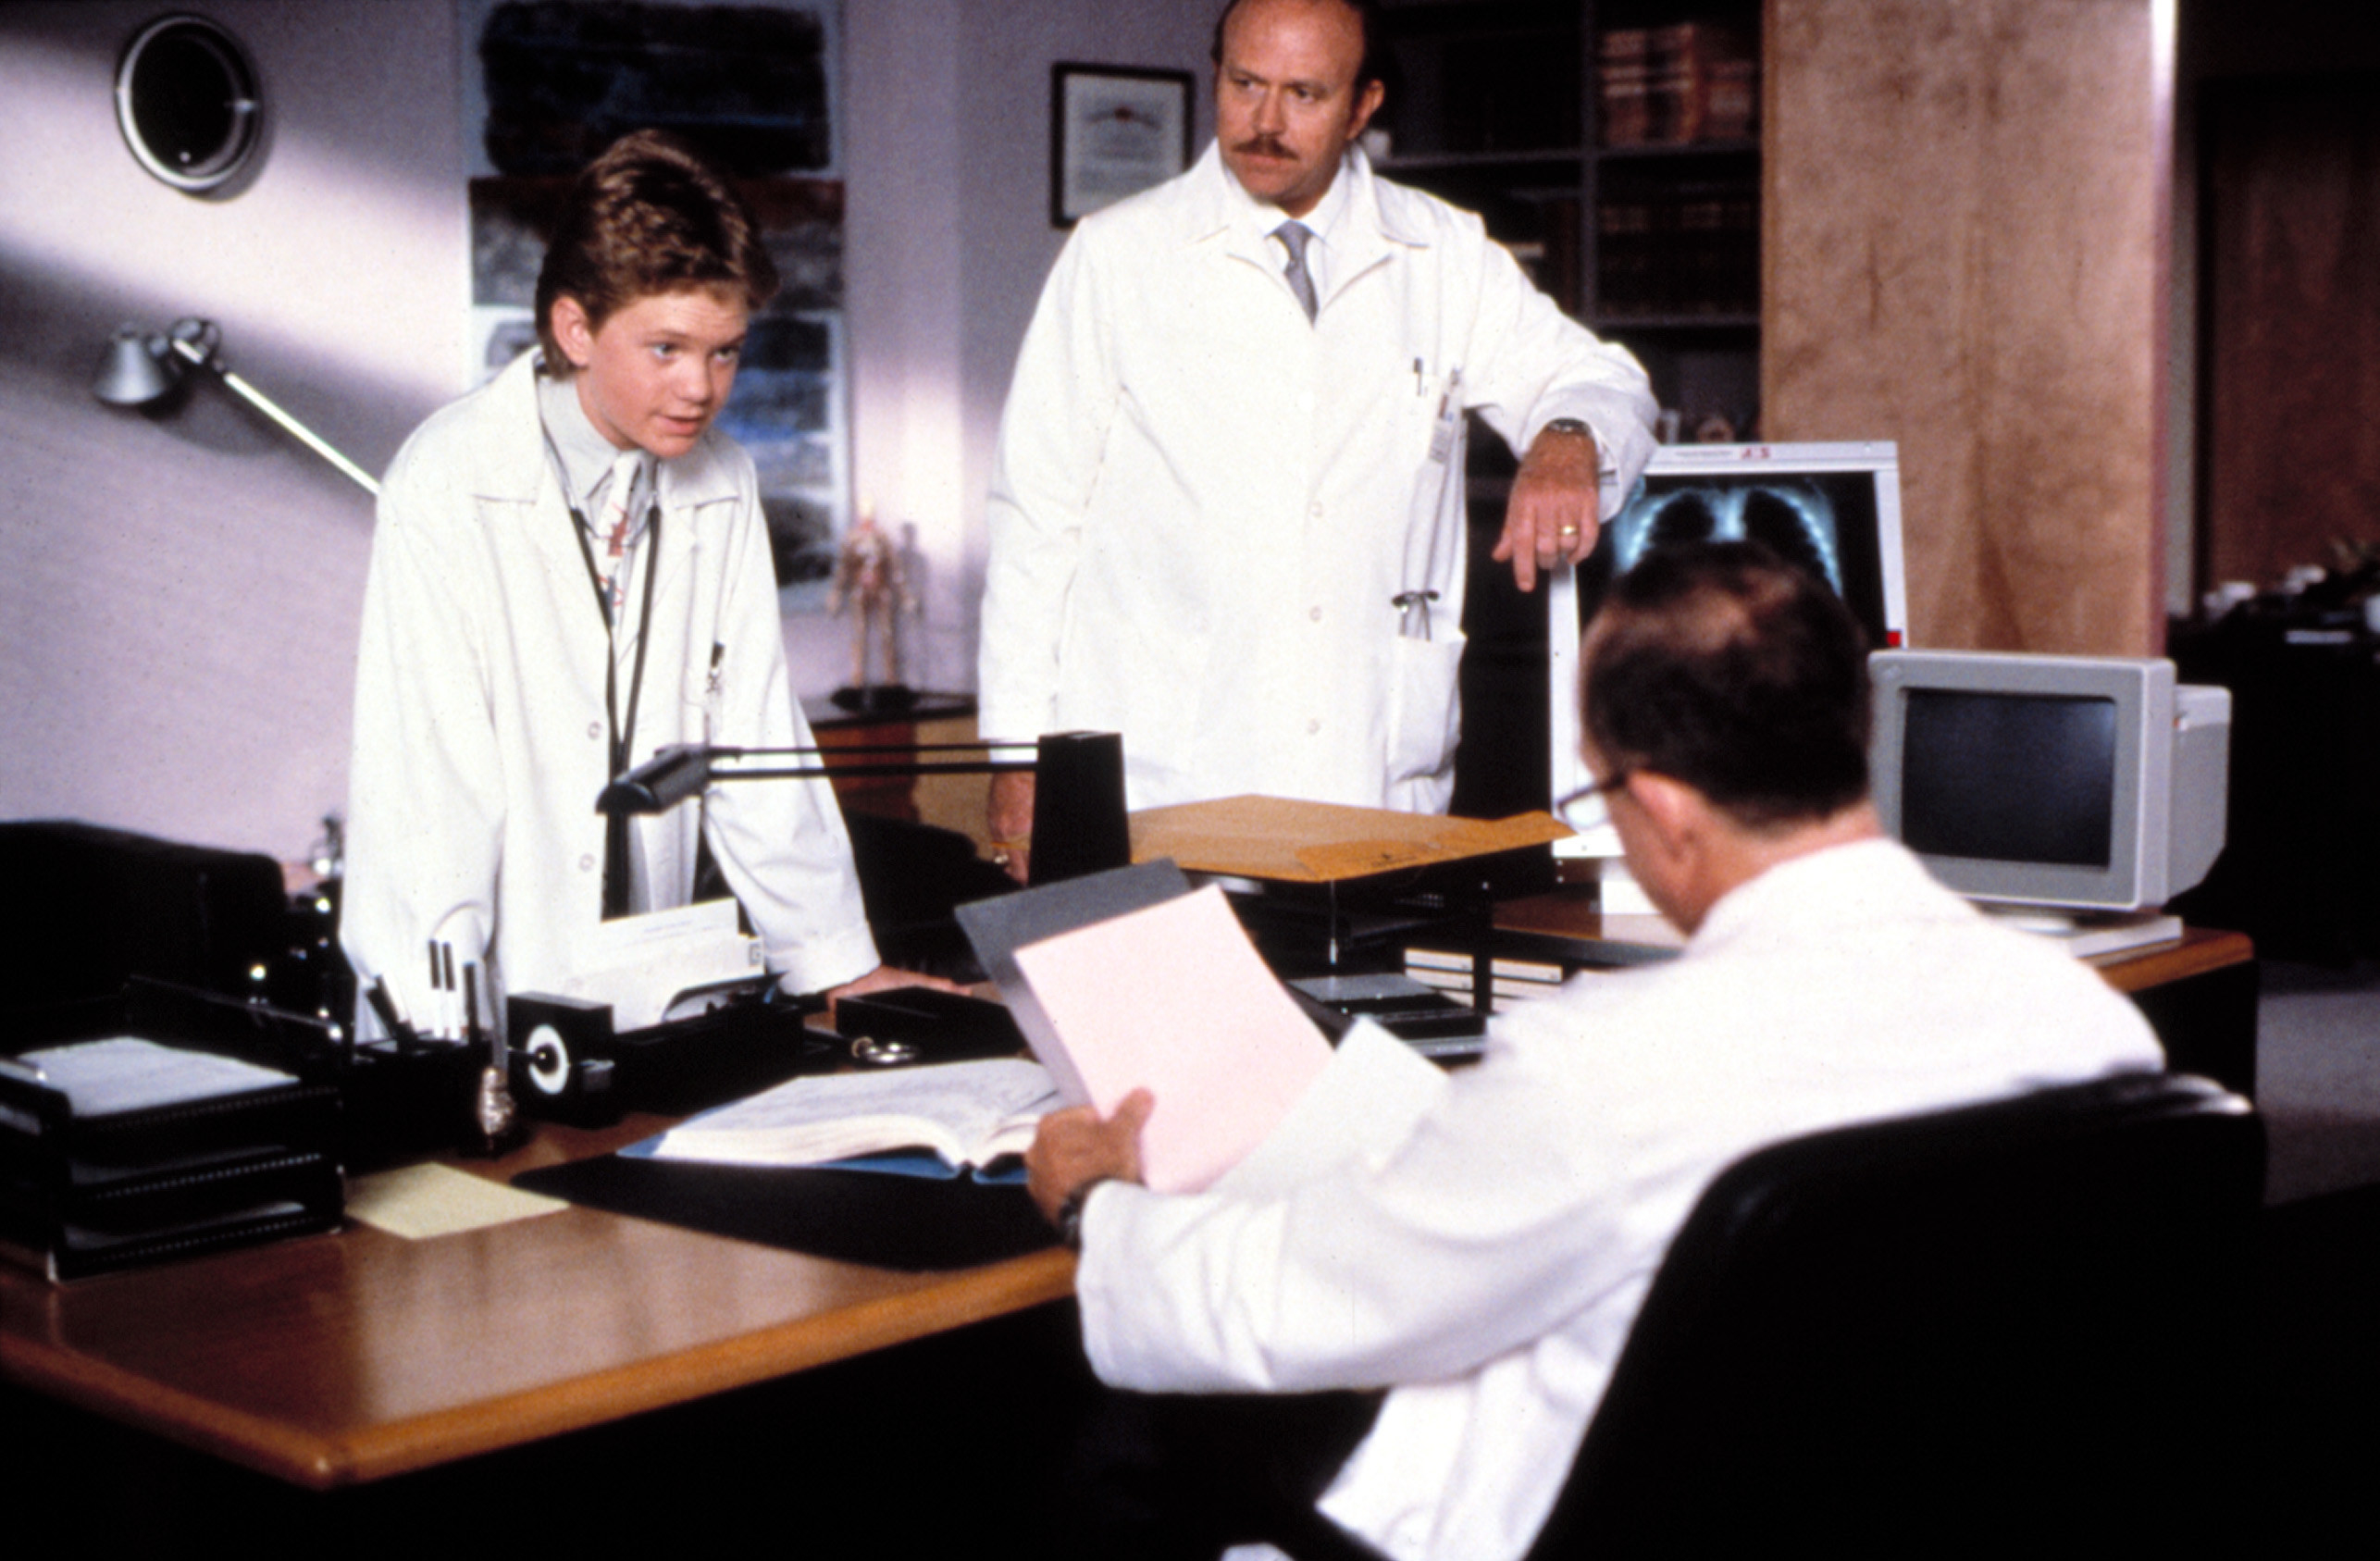 Doogie Howser with two doctors of normal ages